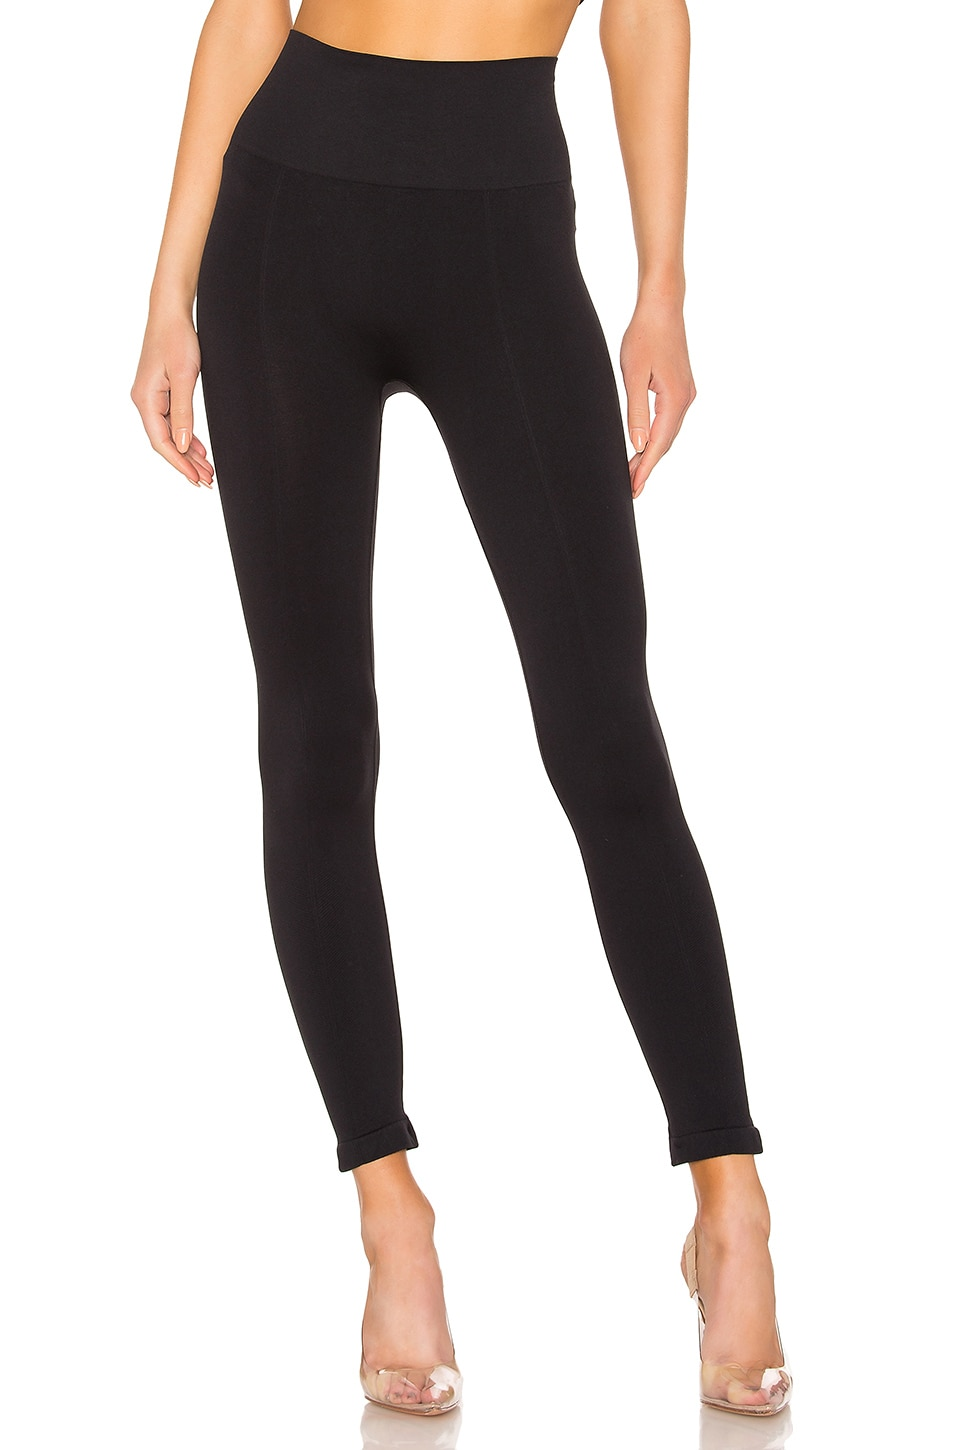 Yummie Ankle Length Seamless Legging in Black